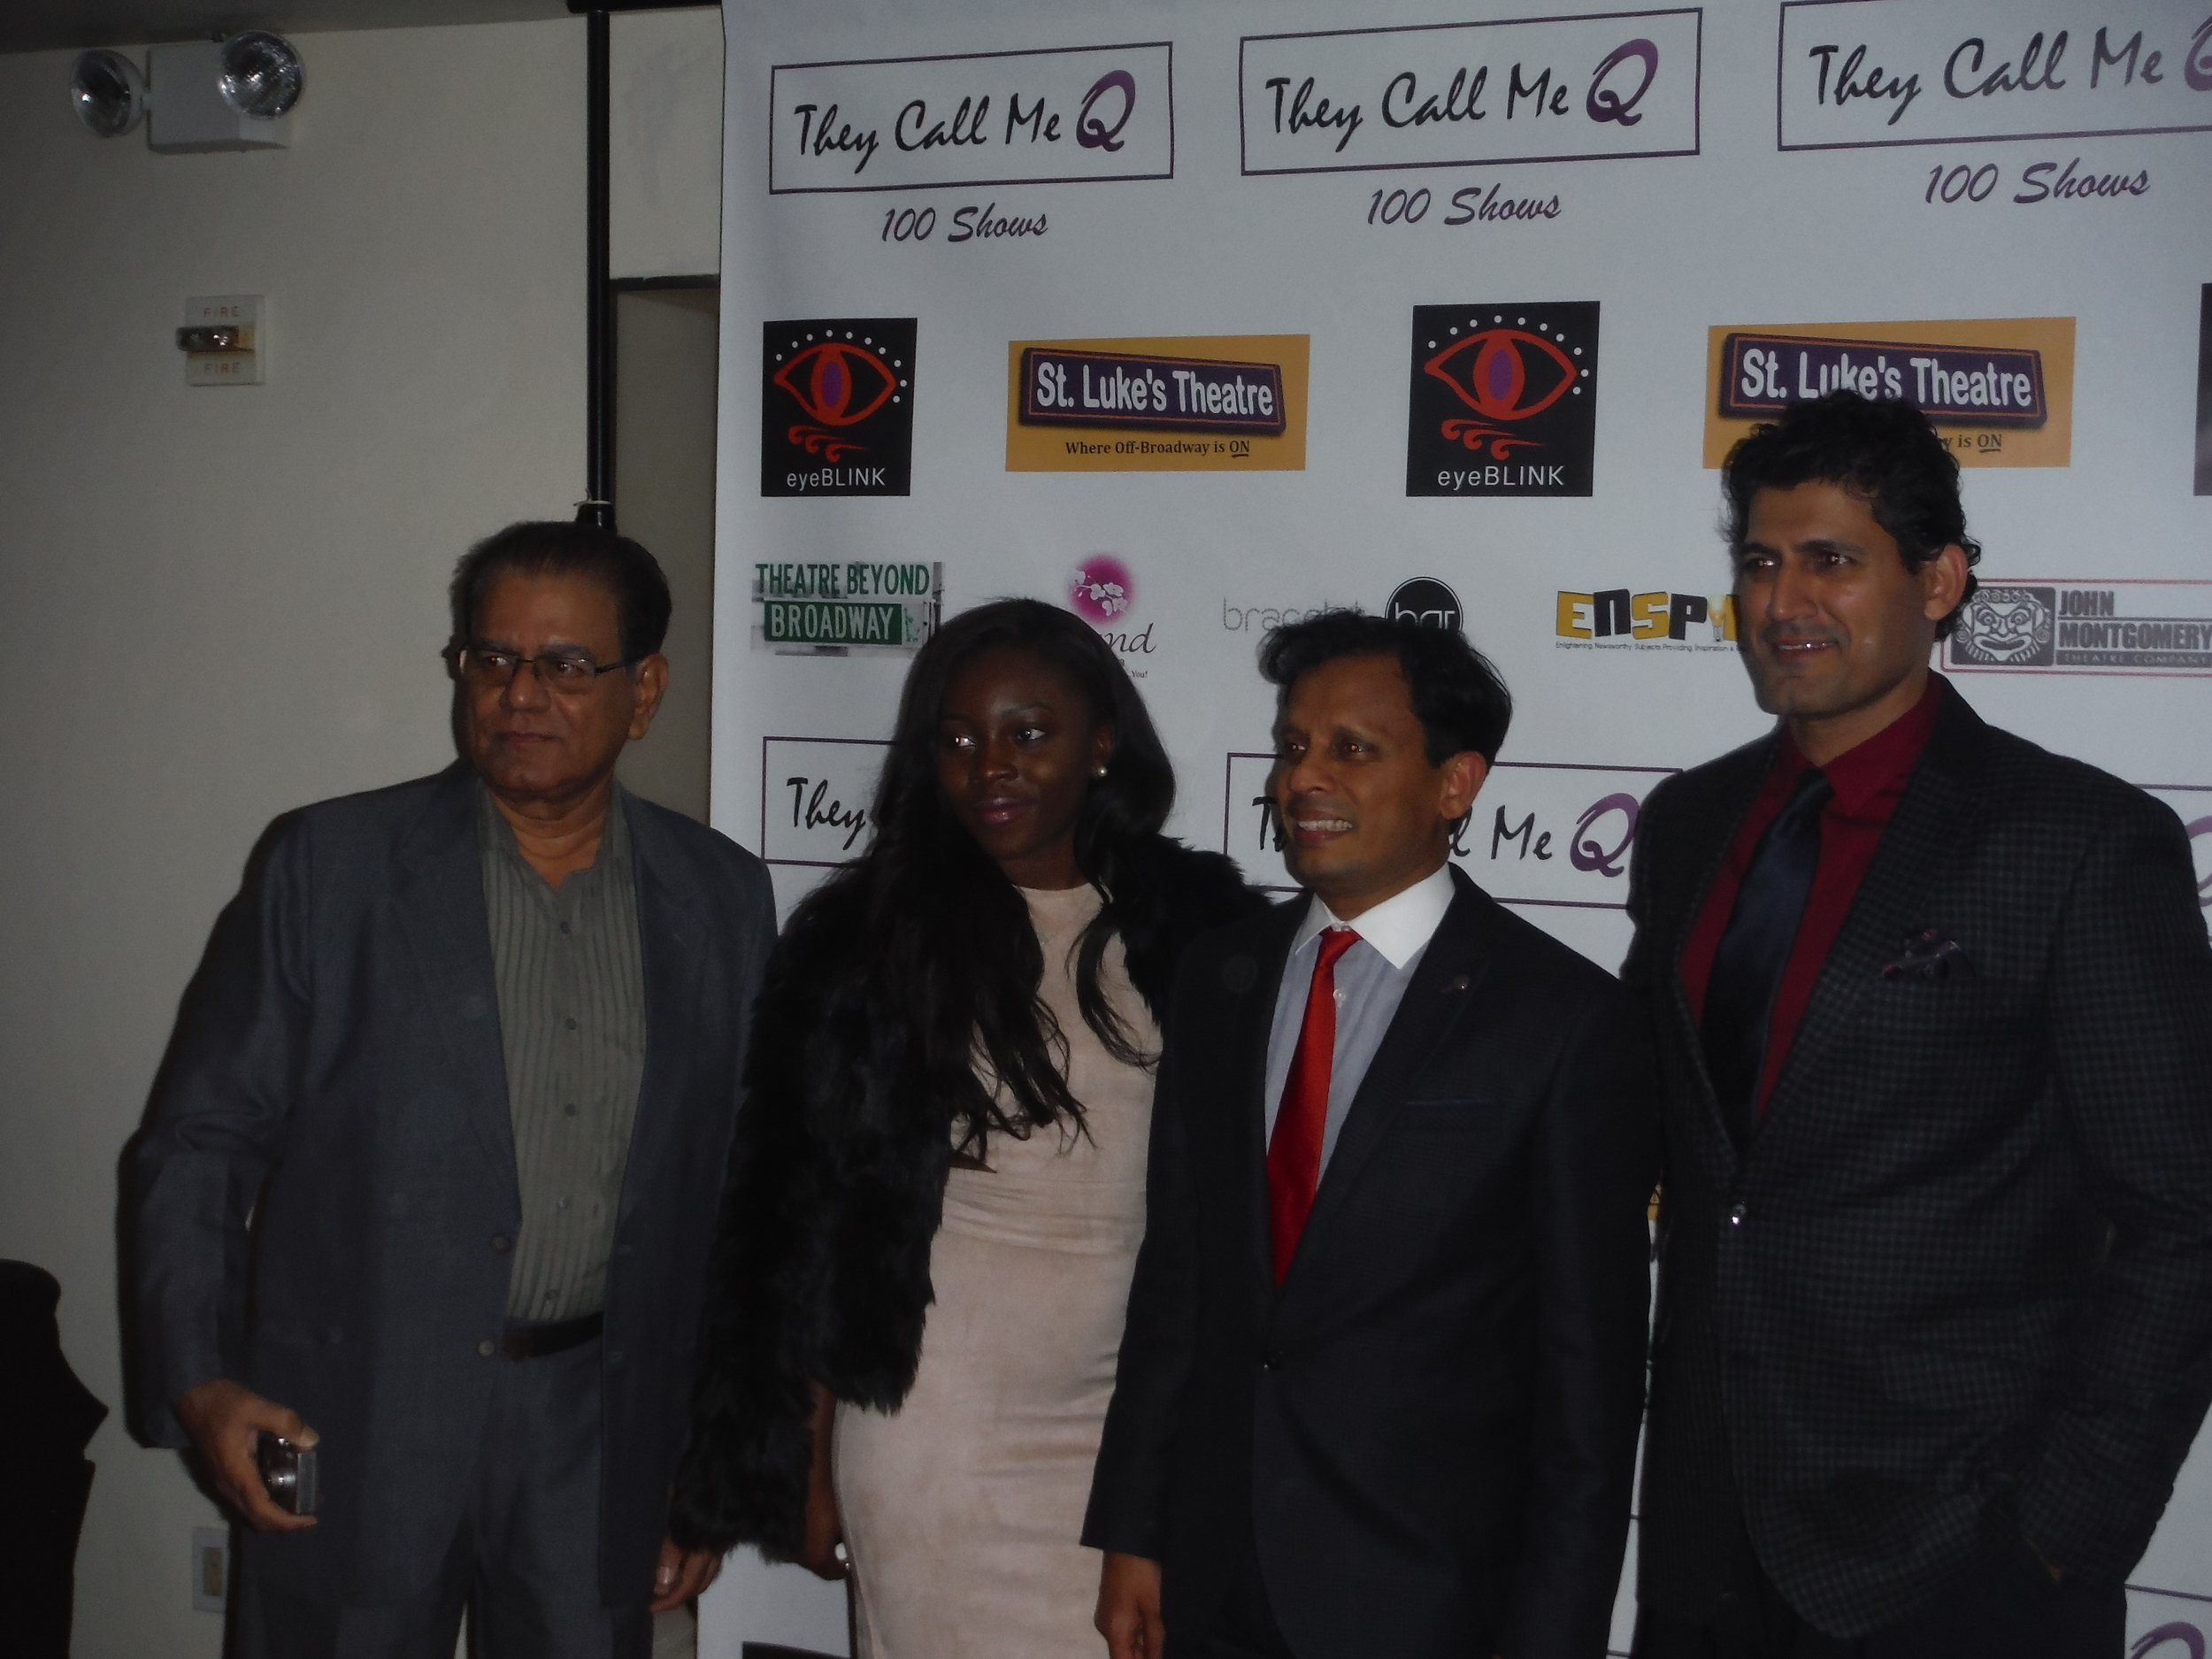 They Call Me Q 100th Show Party 080.JPG